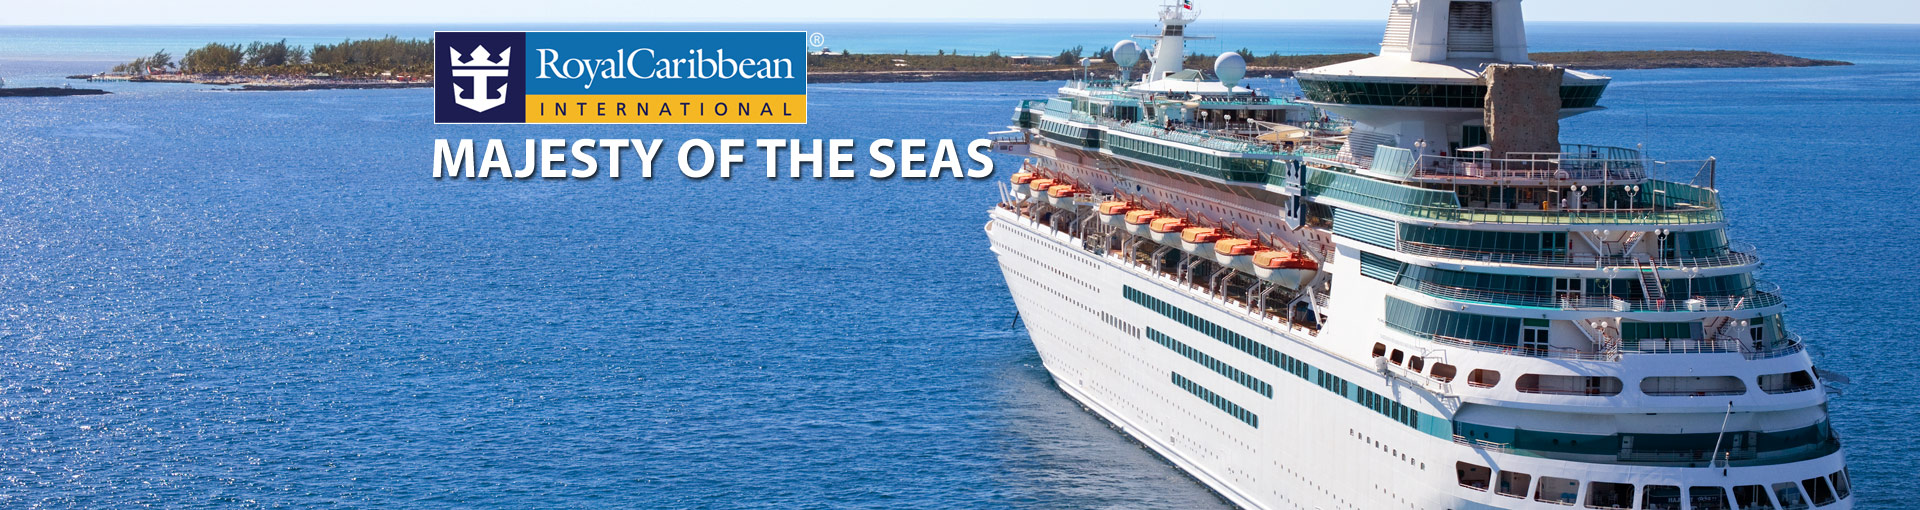 Royal caribbeans majesty of the seas cruise ship 2017 and 2018 royal caribbean majesty of the seas baanklon Gallery